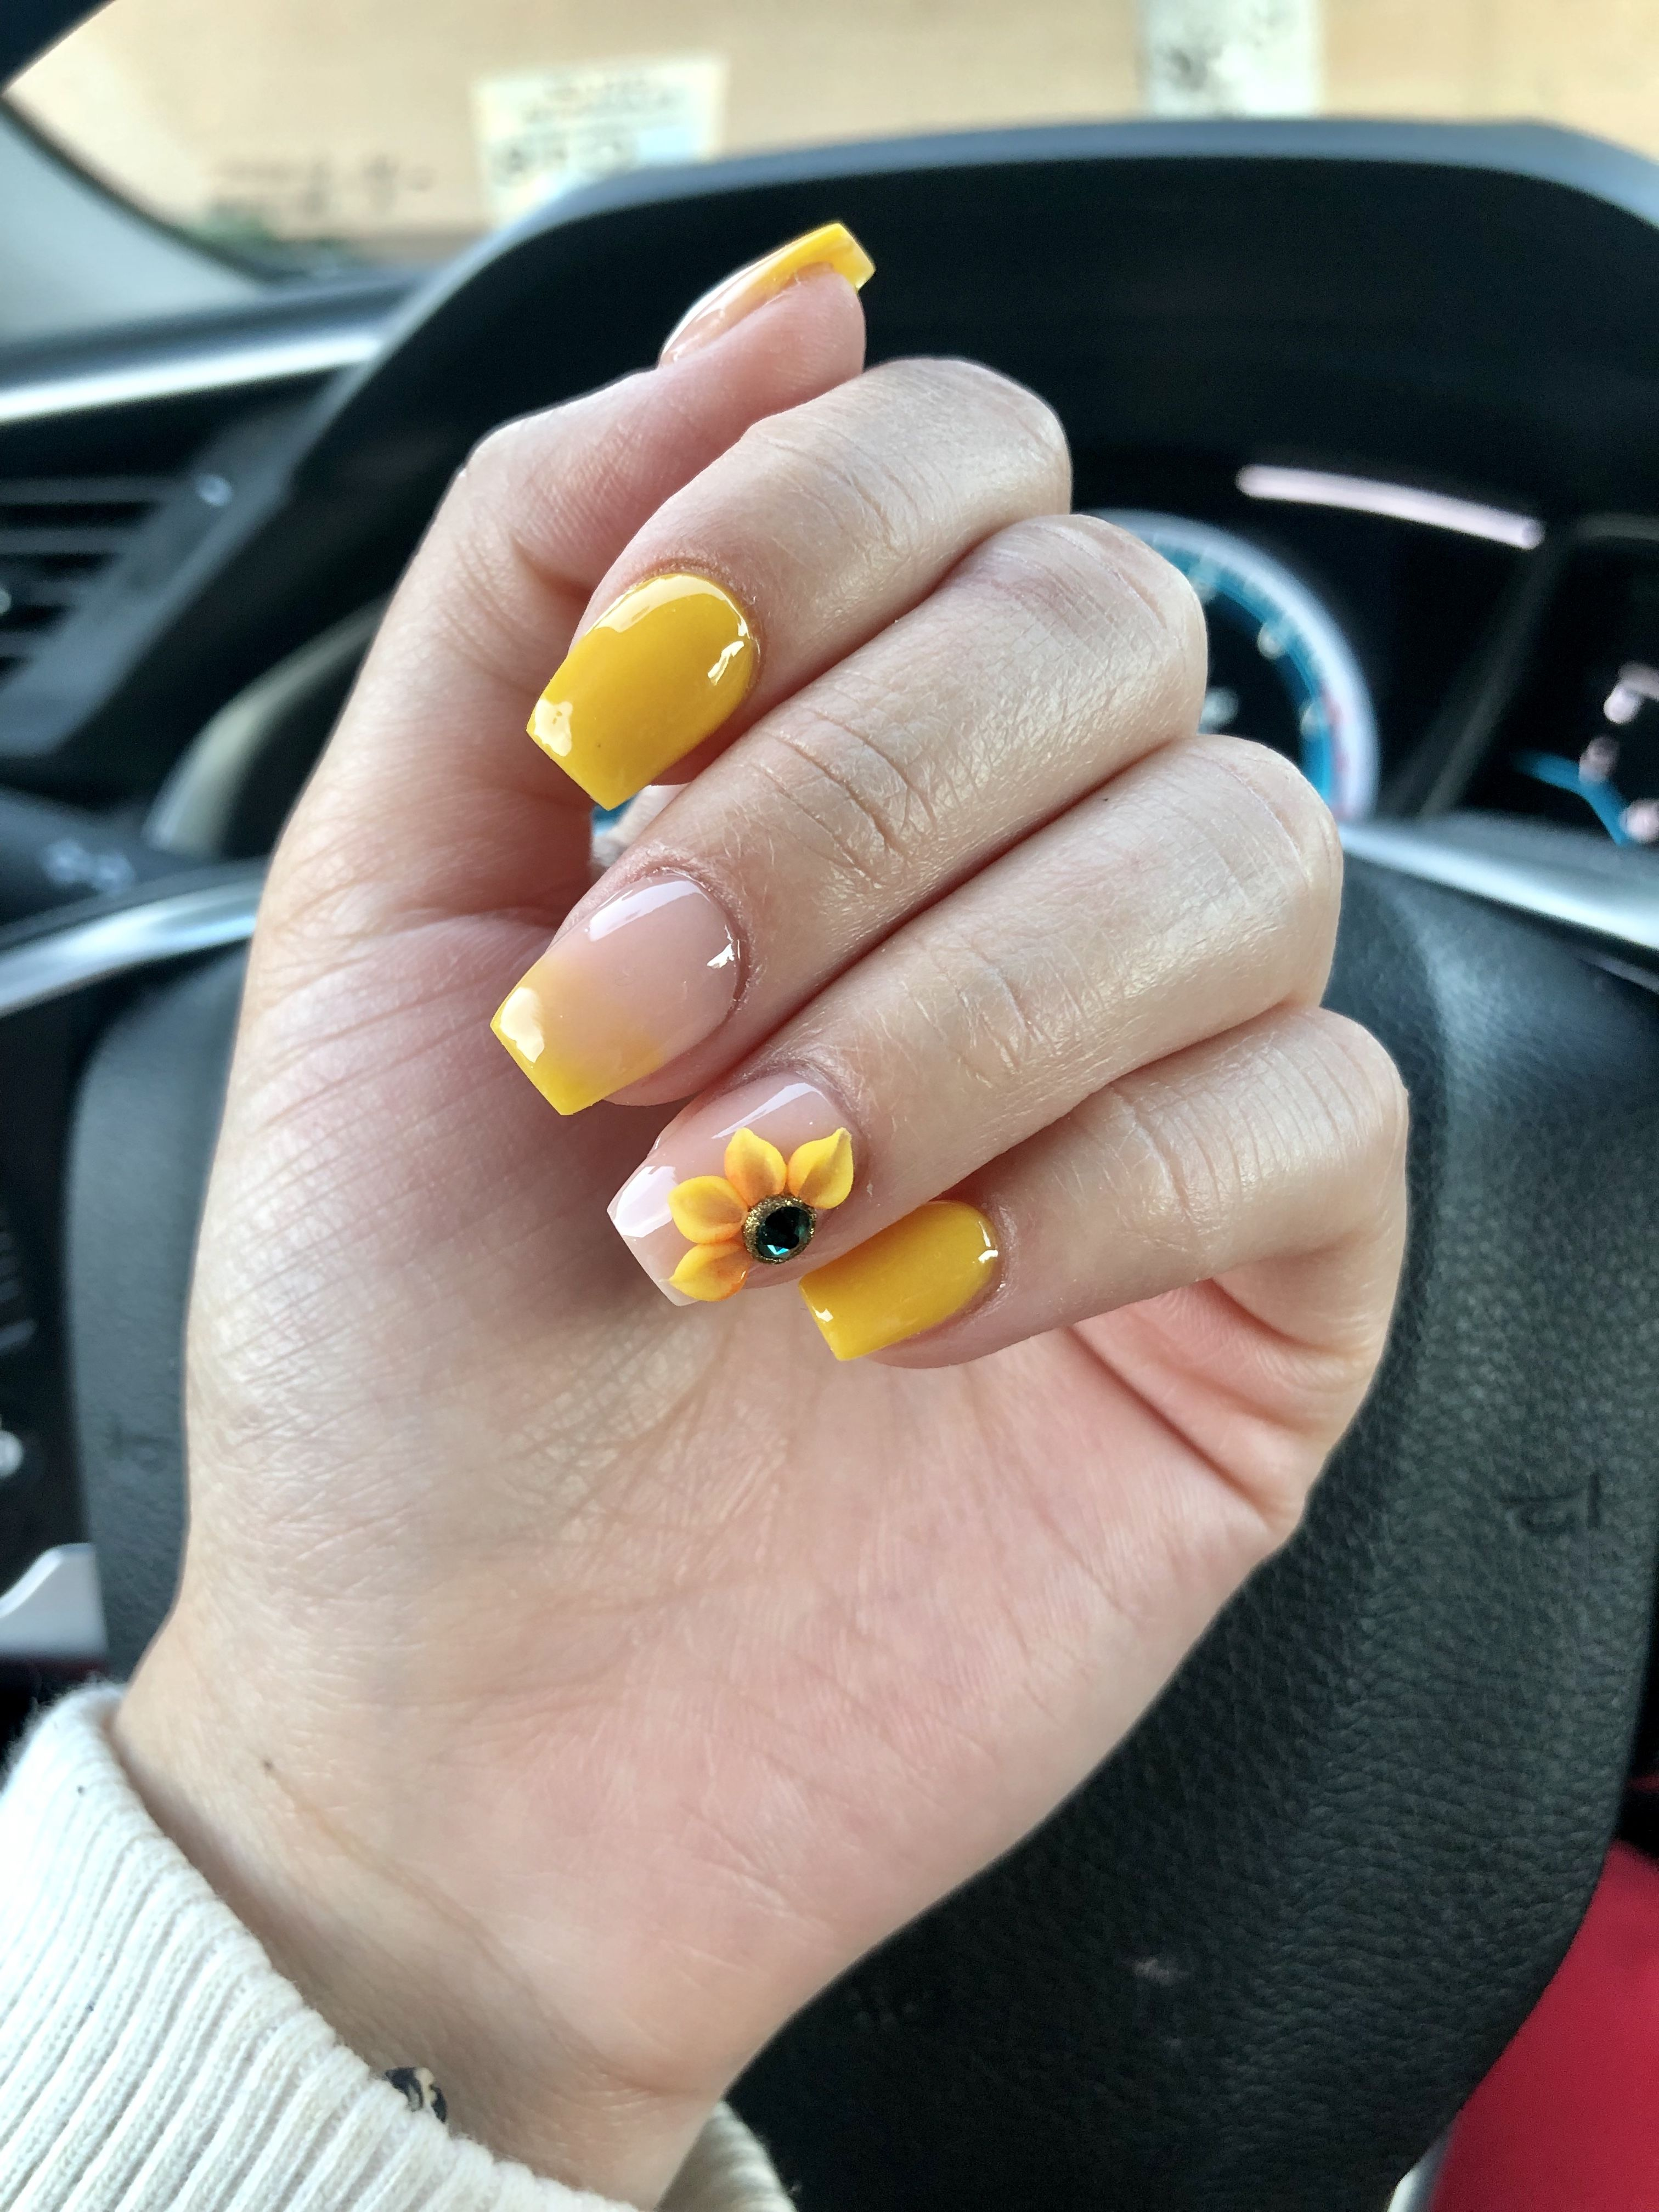 Nails With Sunflowers : nails, sunflowers, Sunflower, Nails, ☀️, Nails,, Flower, Spring